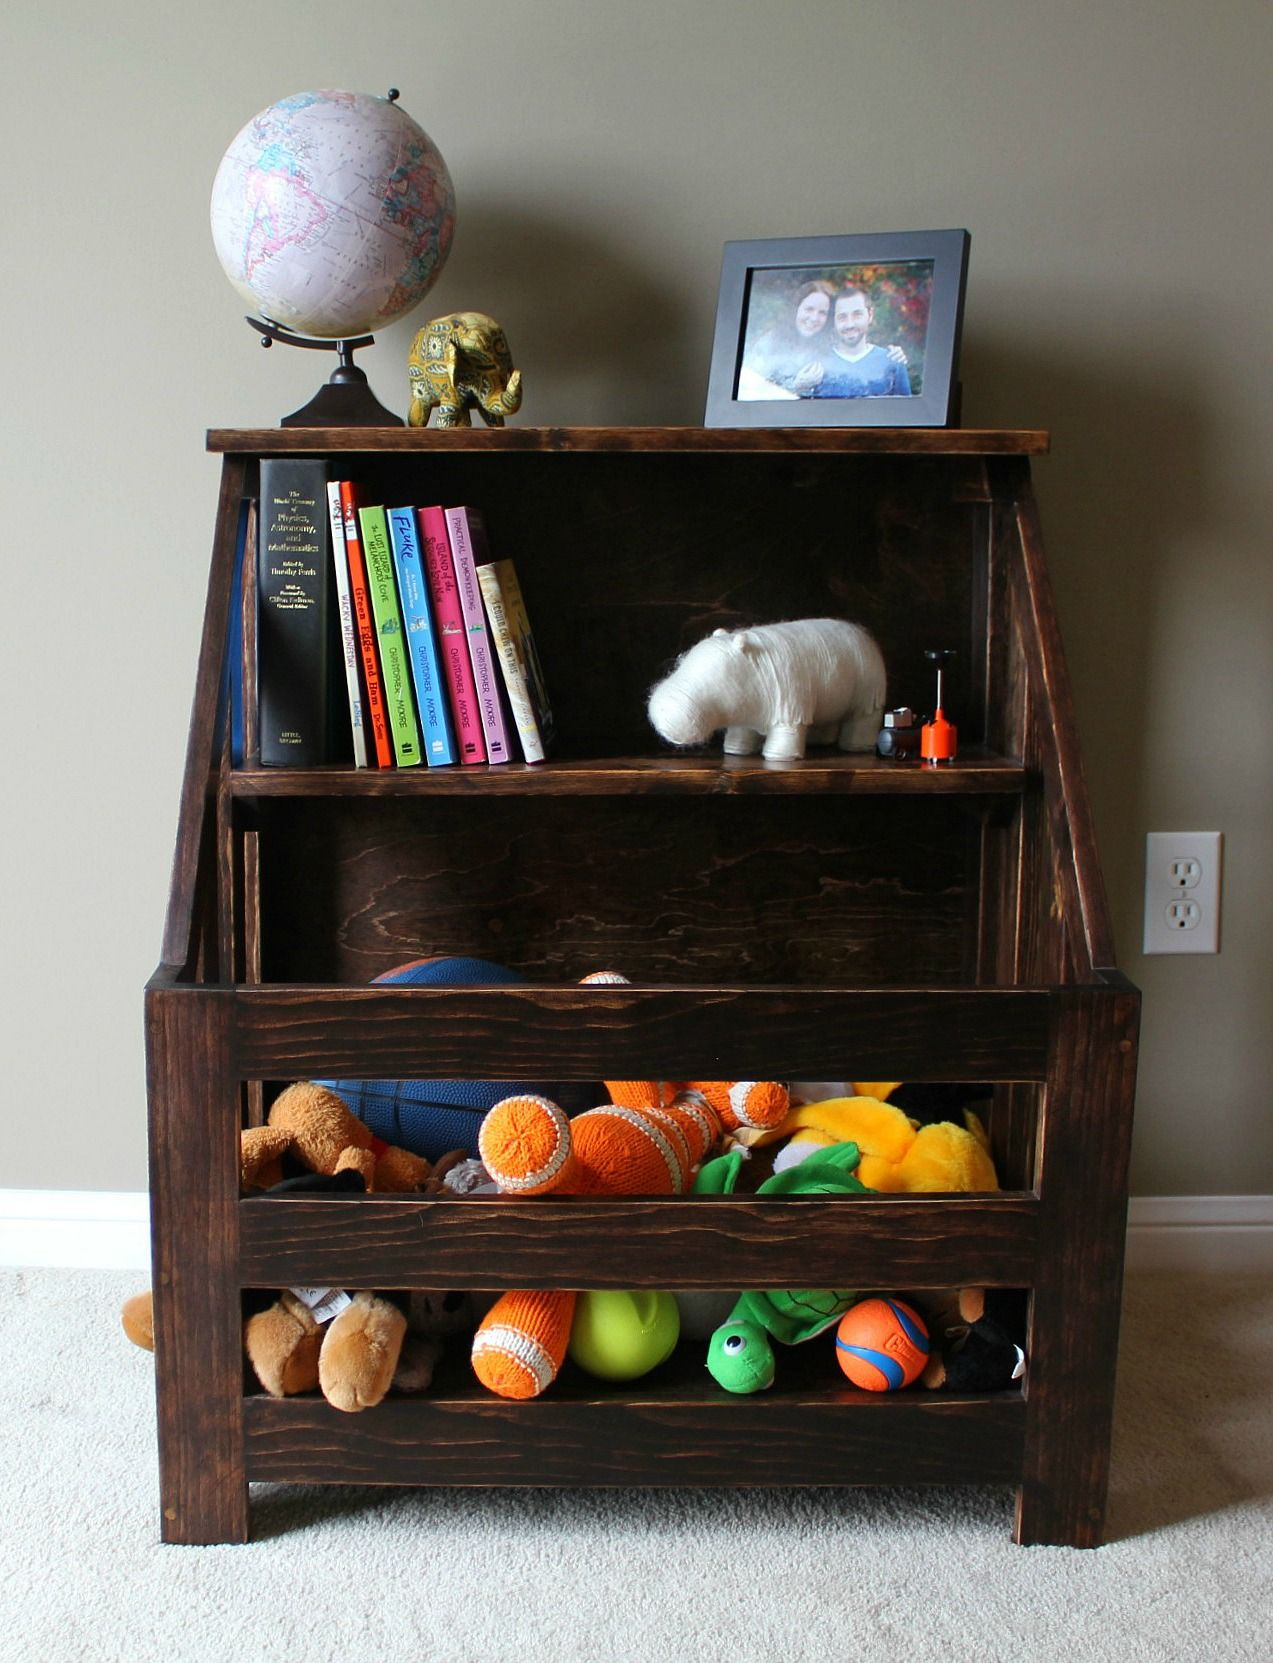 diy wood toybox with bookcase. looks great and super